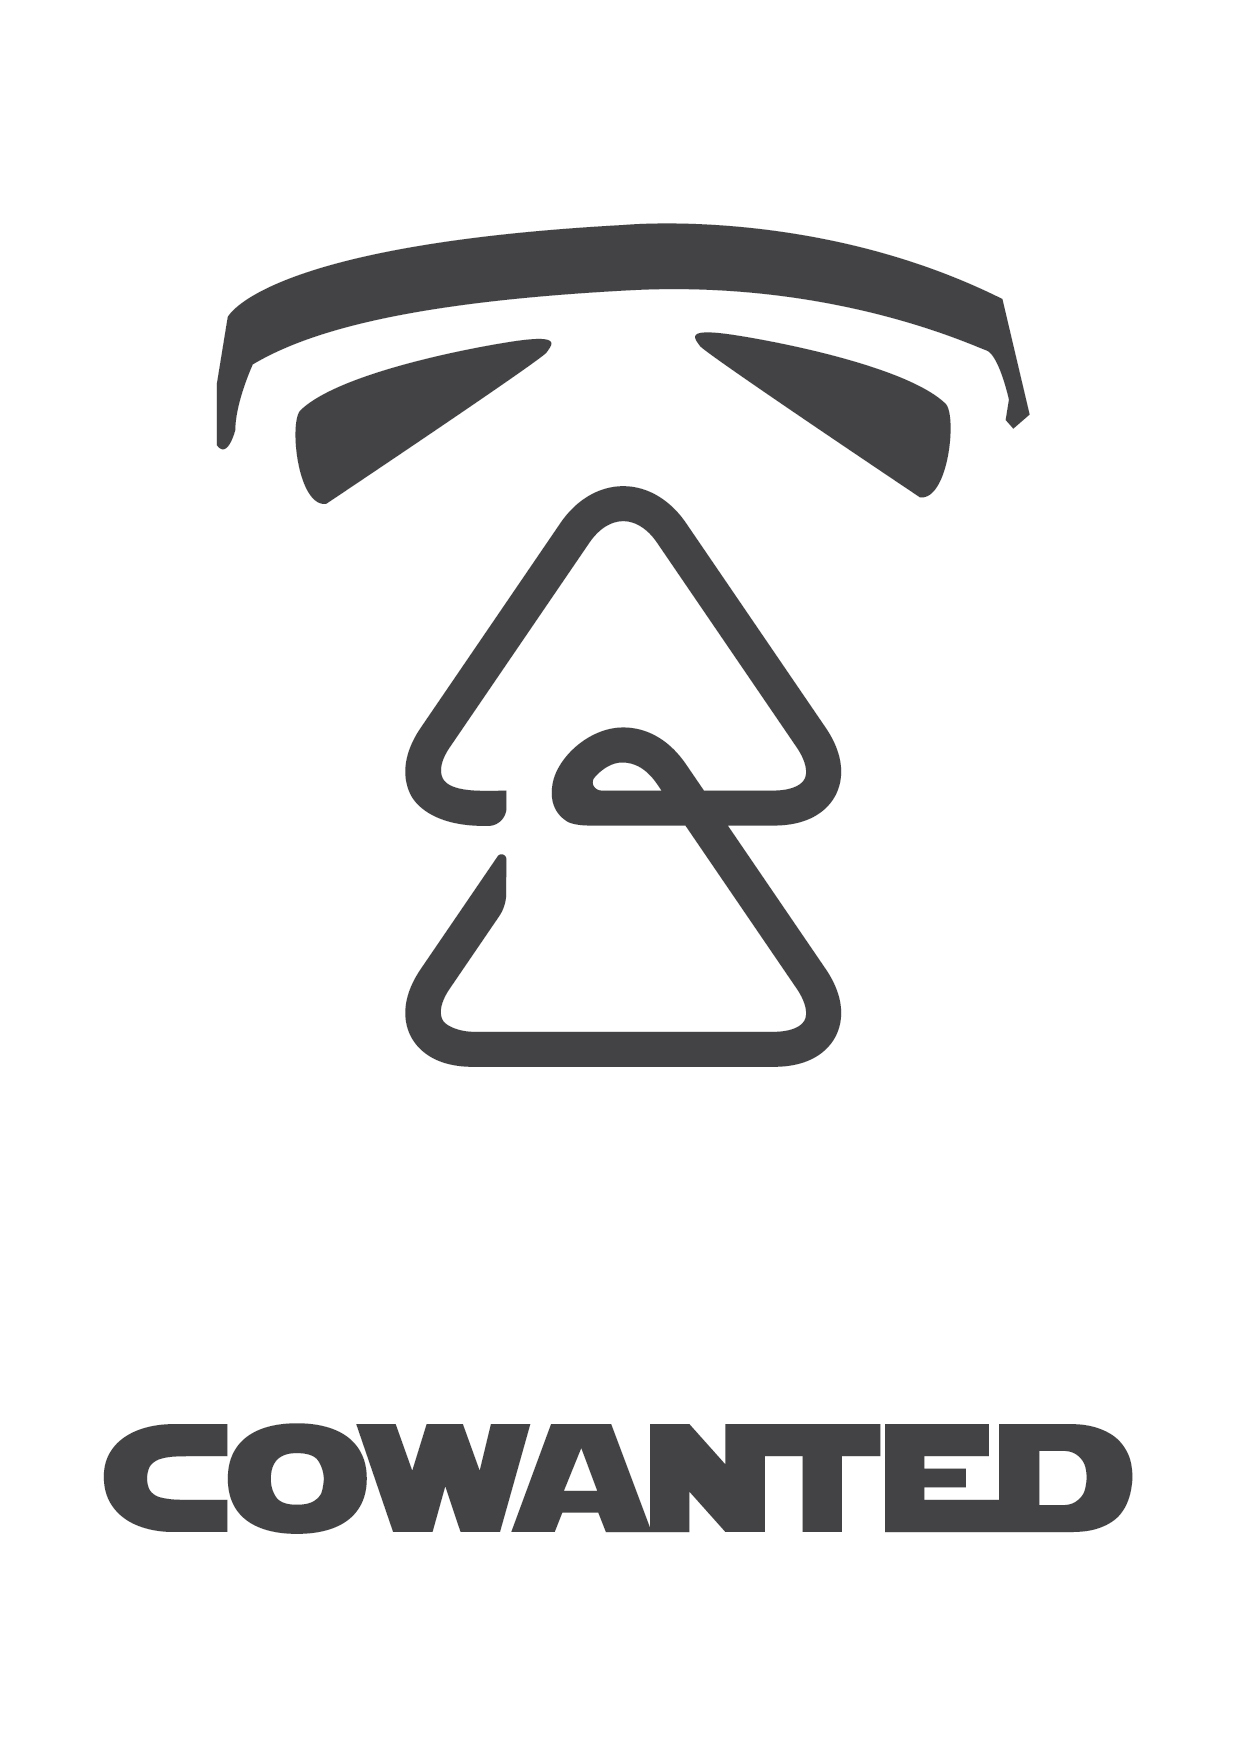 COWANTED